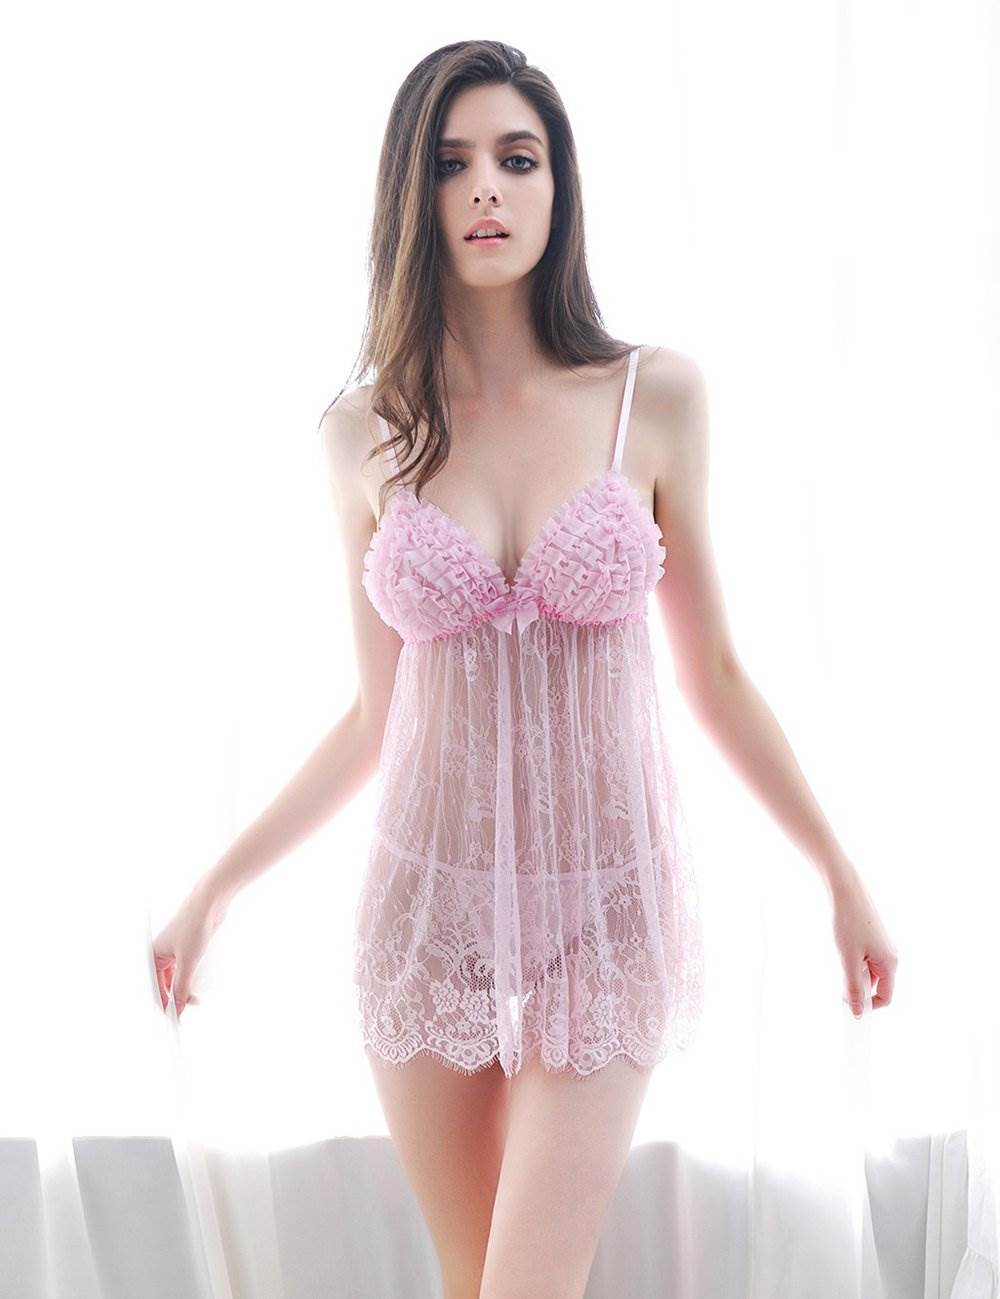 Hot Low MOQ Pink Sheer Teen Girls Sexy Lingerie